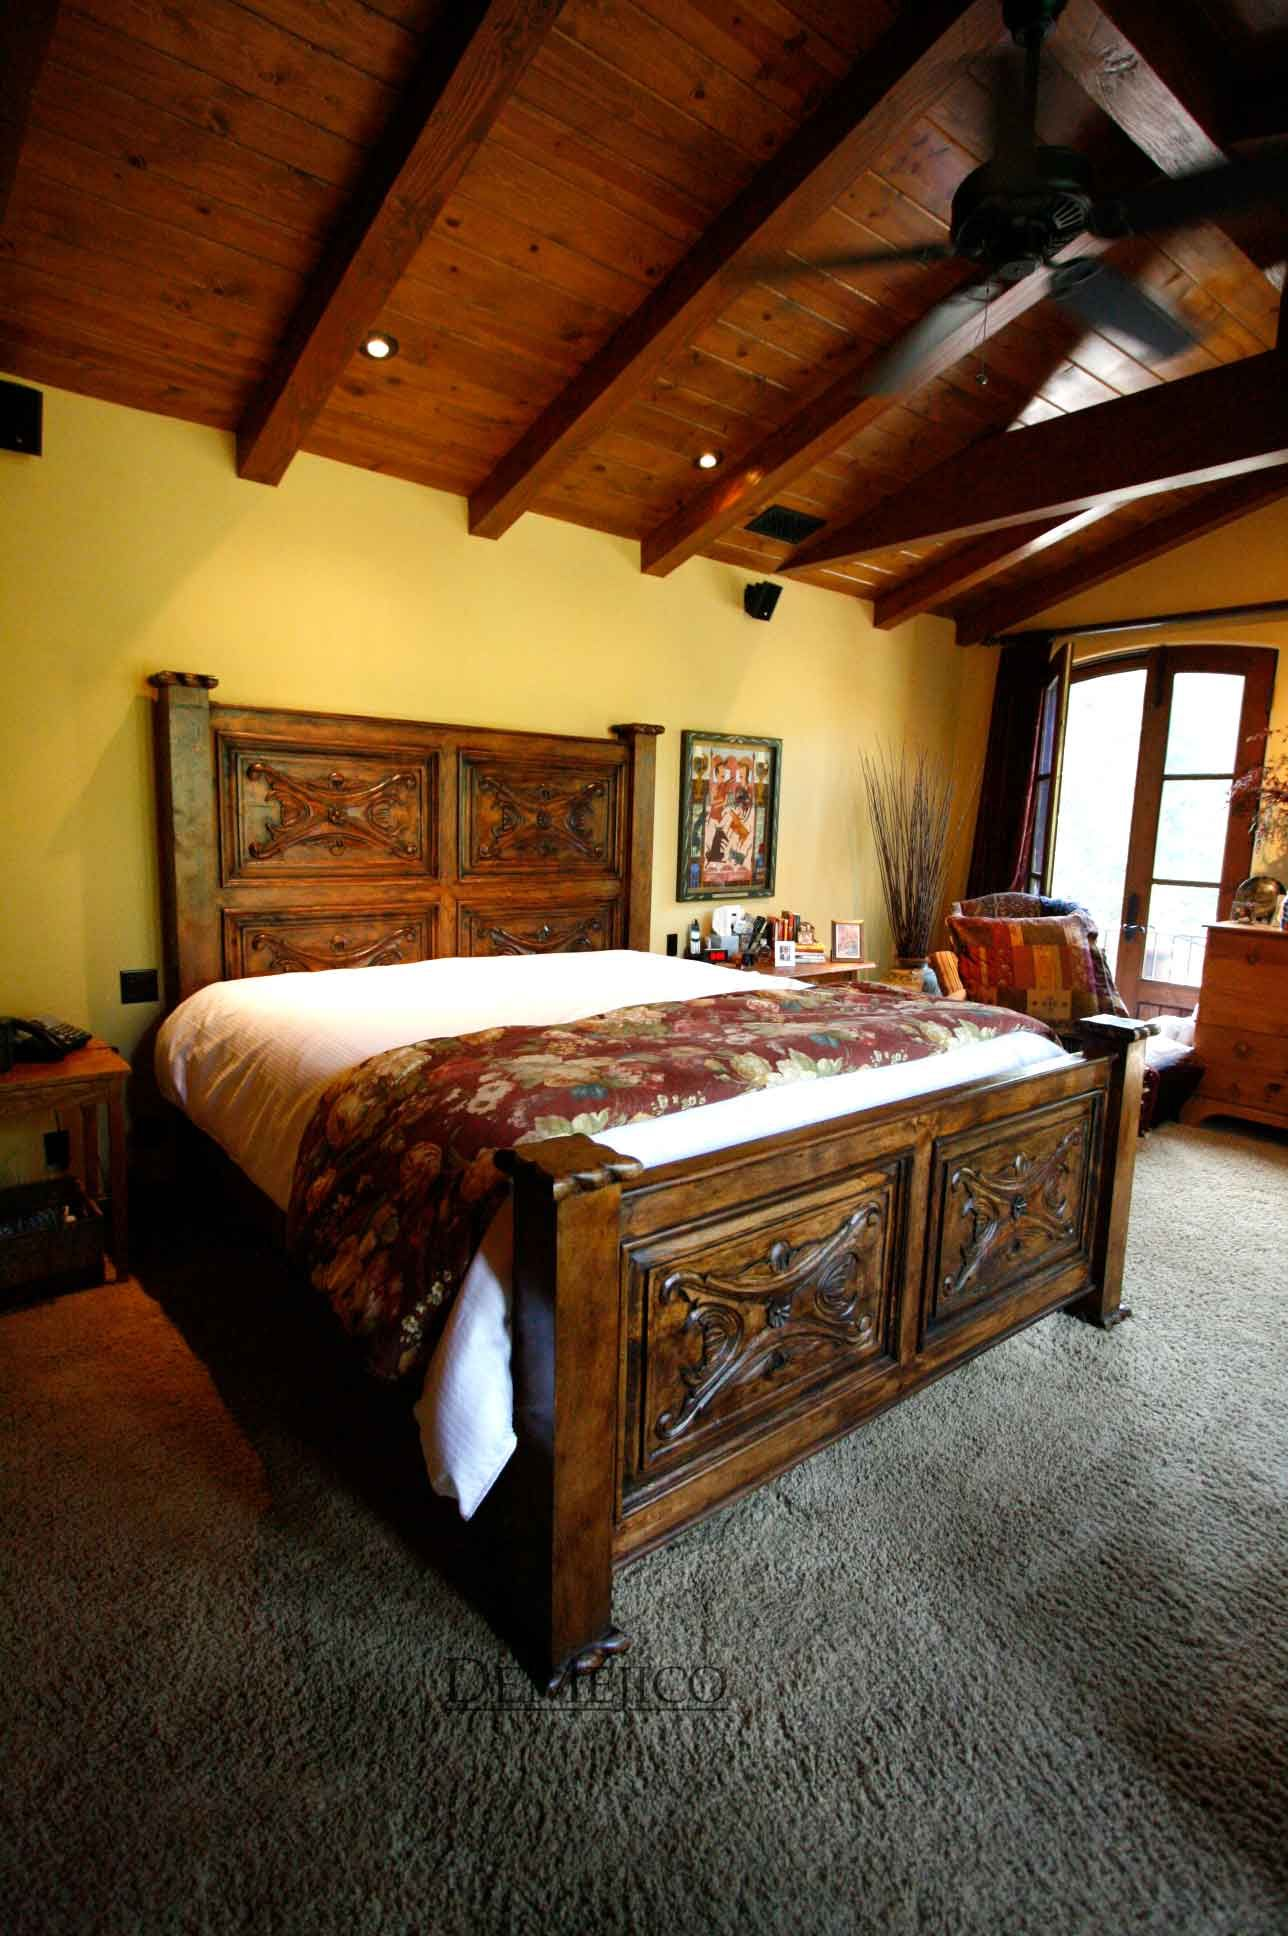 The Luis Quince Bed features hand carved Spanish designs ...